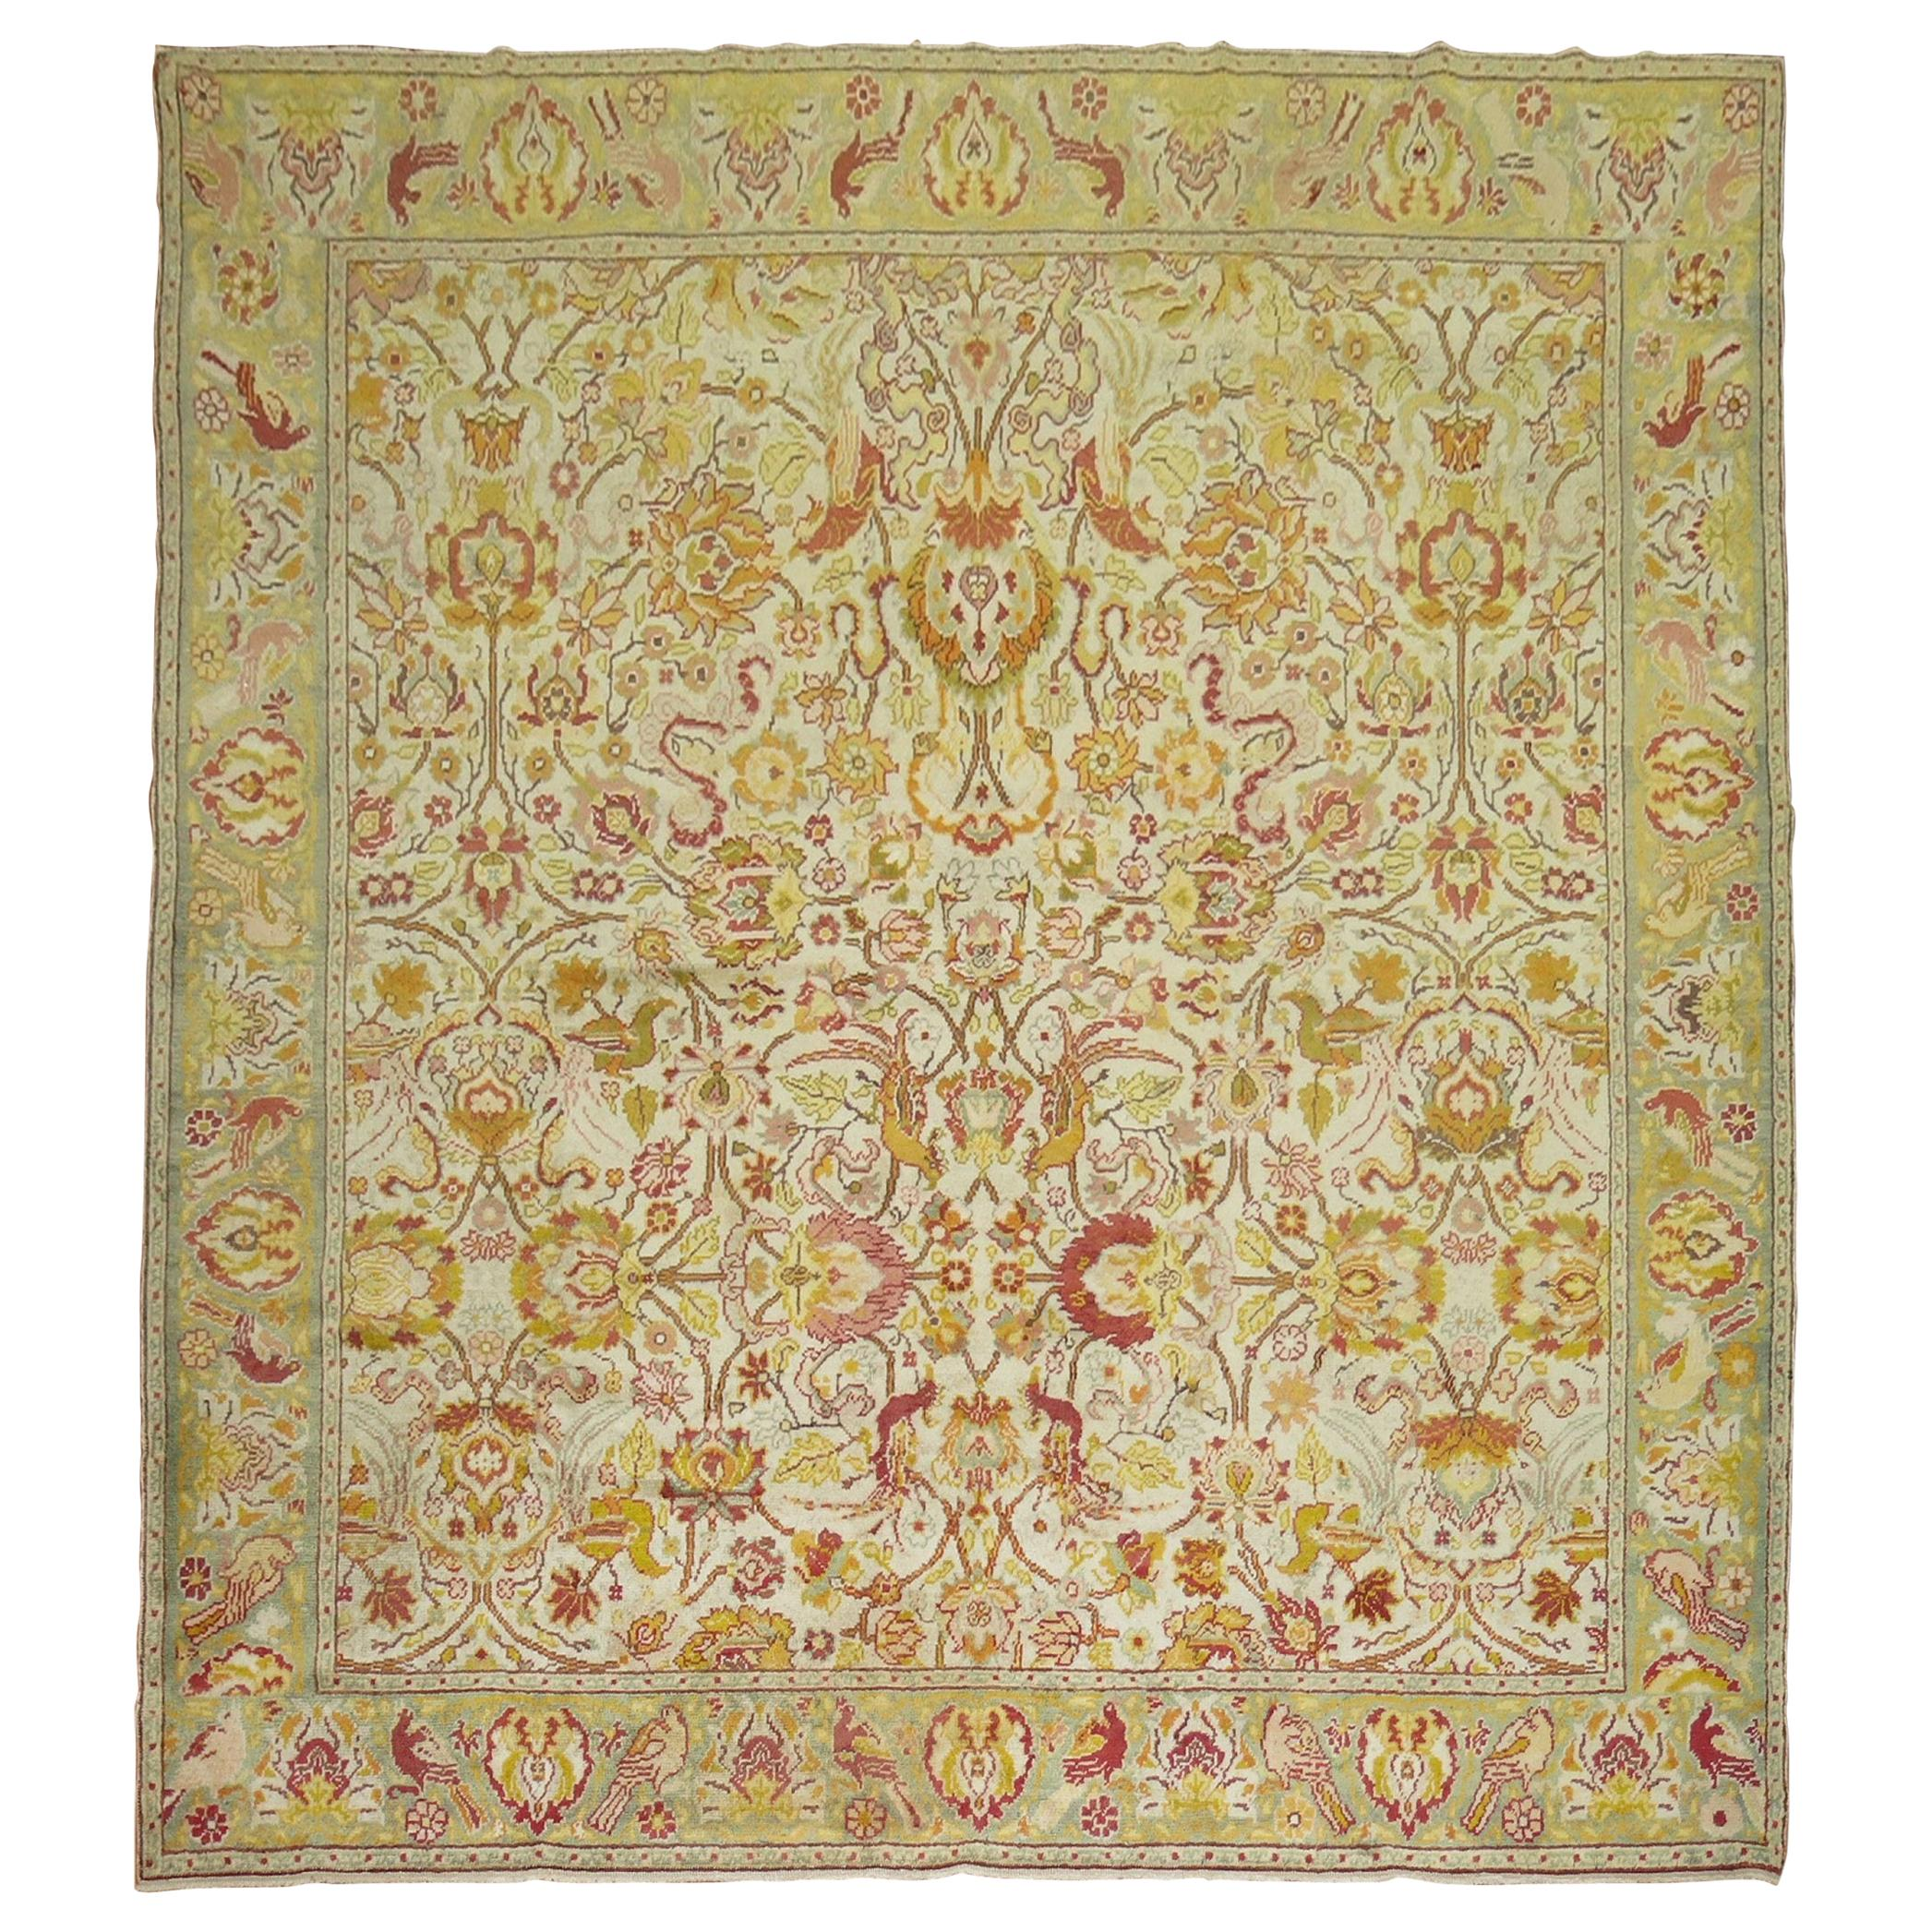 Pictorial Motif Ivory Turkish Square Room Size Rug